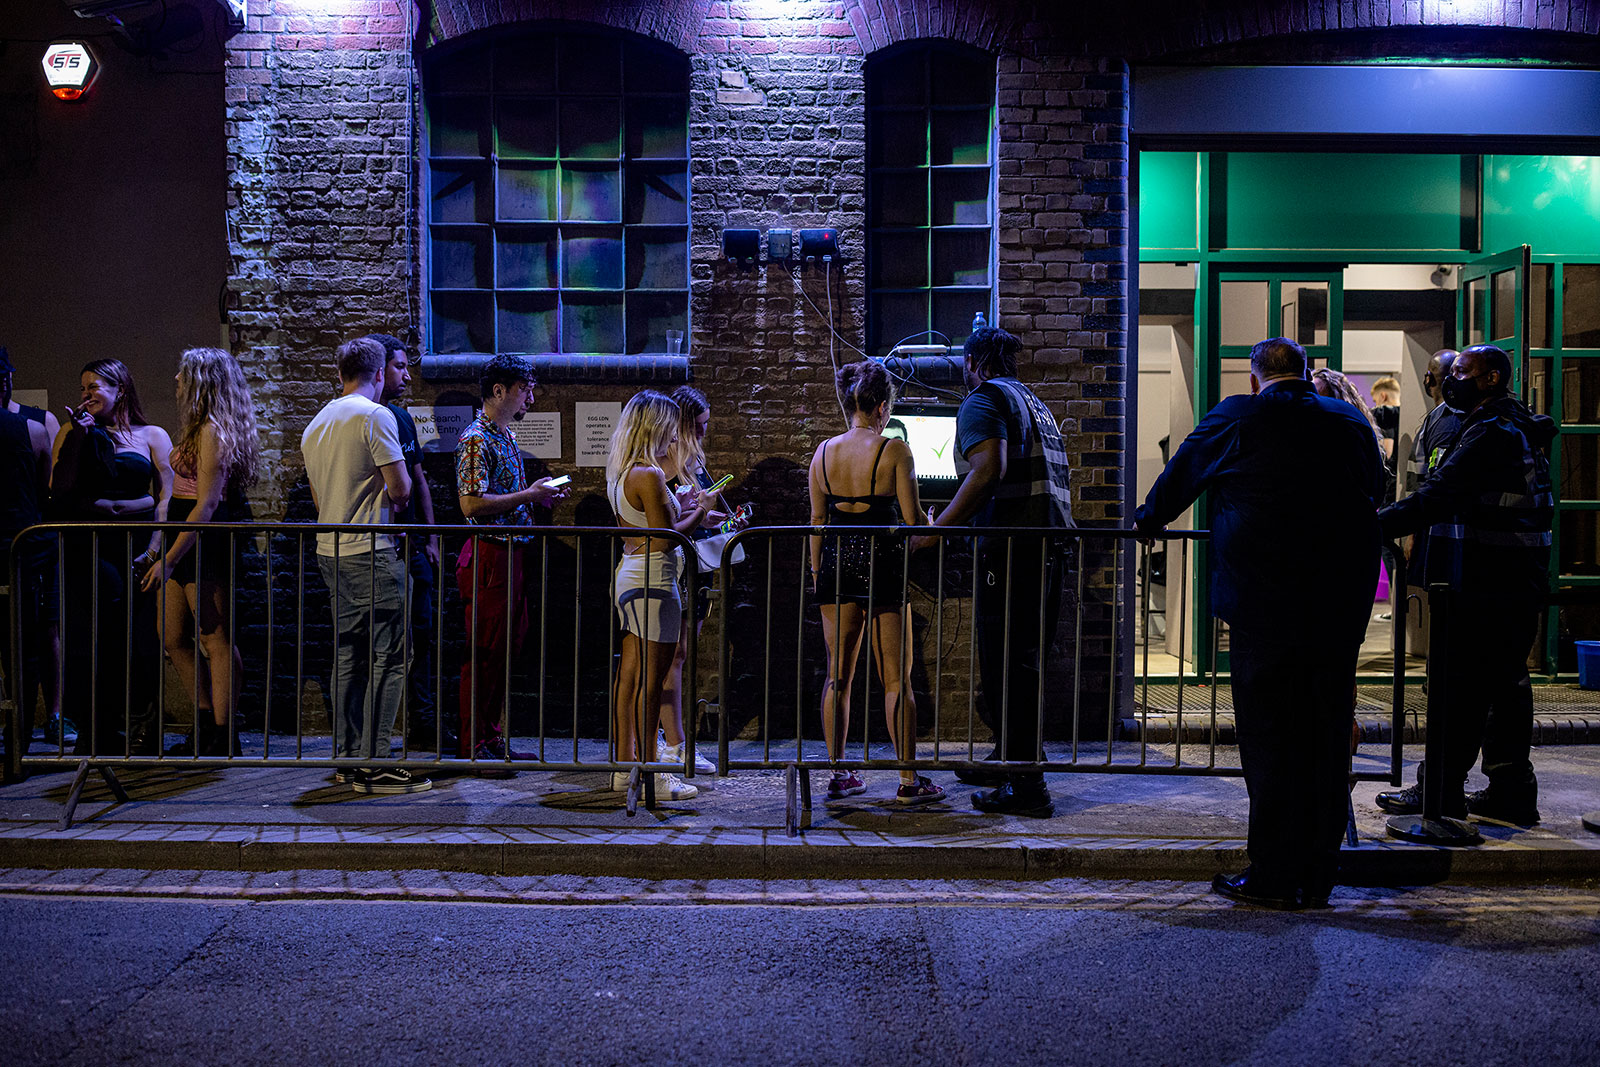 People wait in line to get into a nightclub in London, England, on July 19.